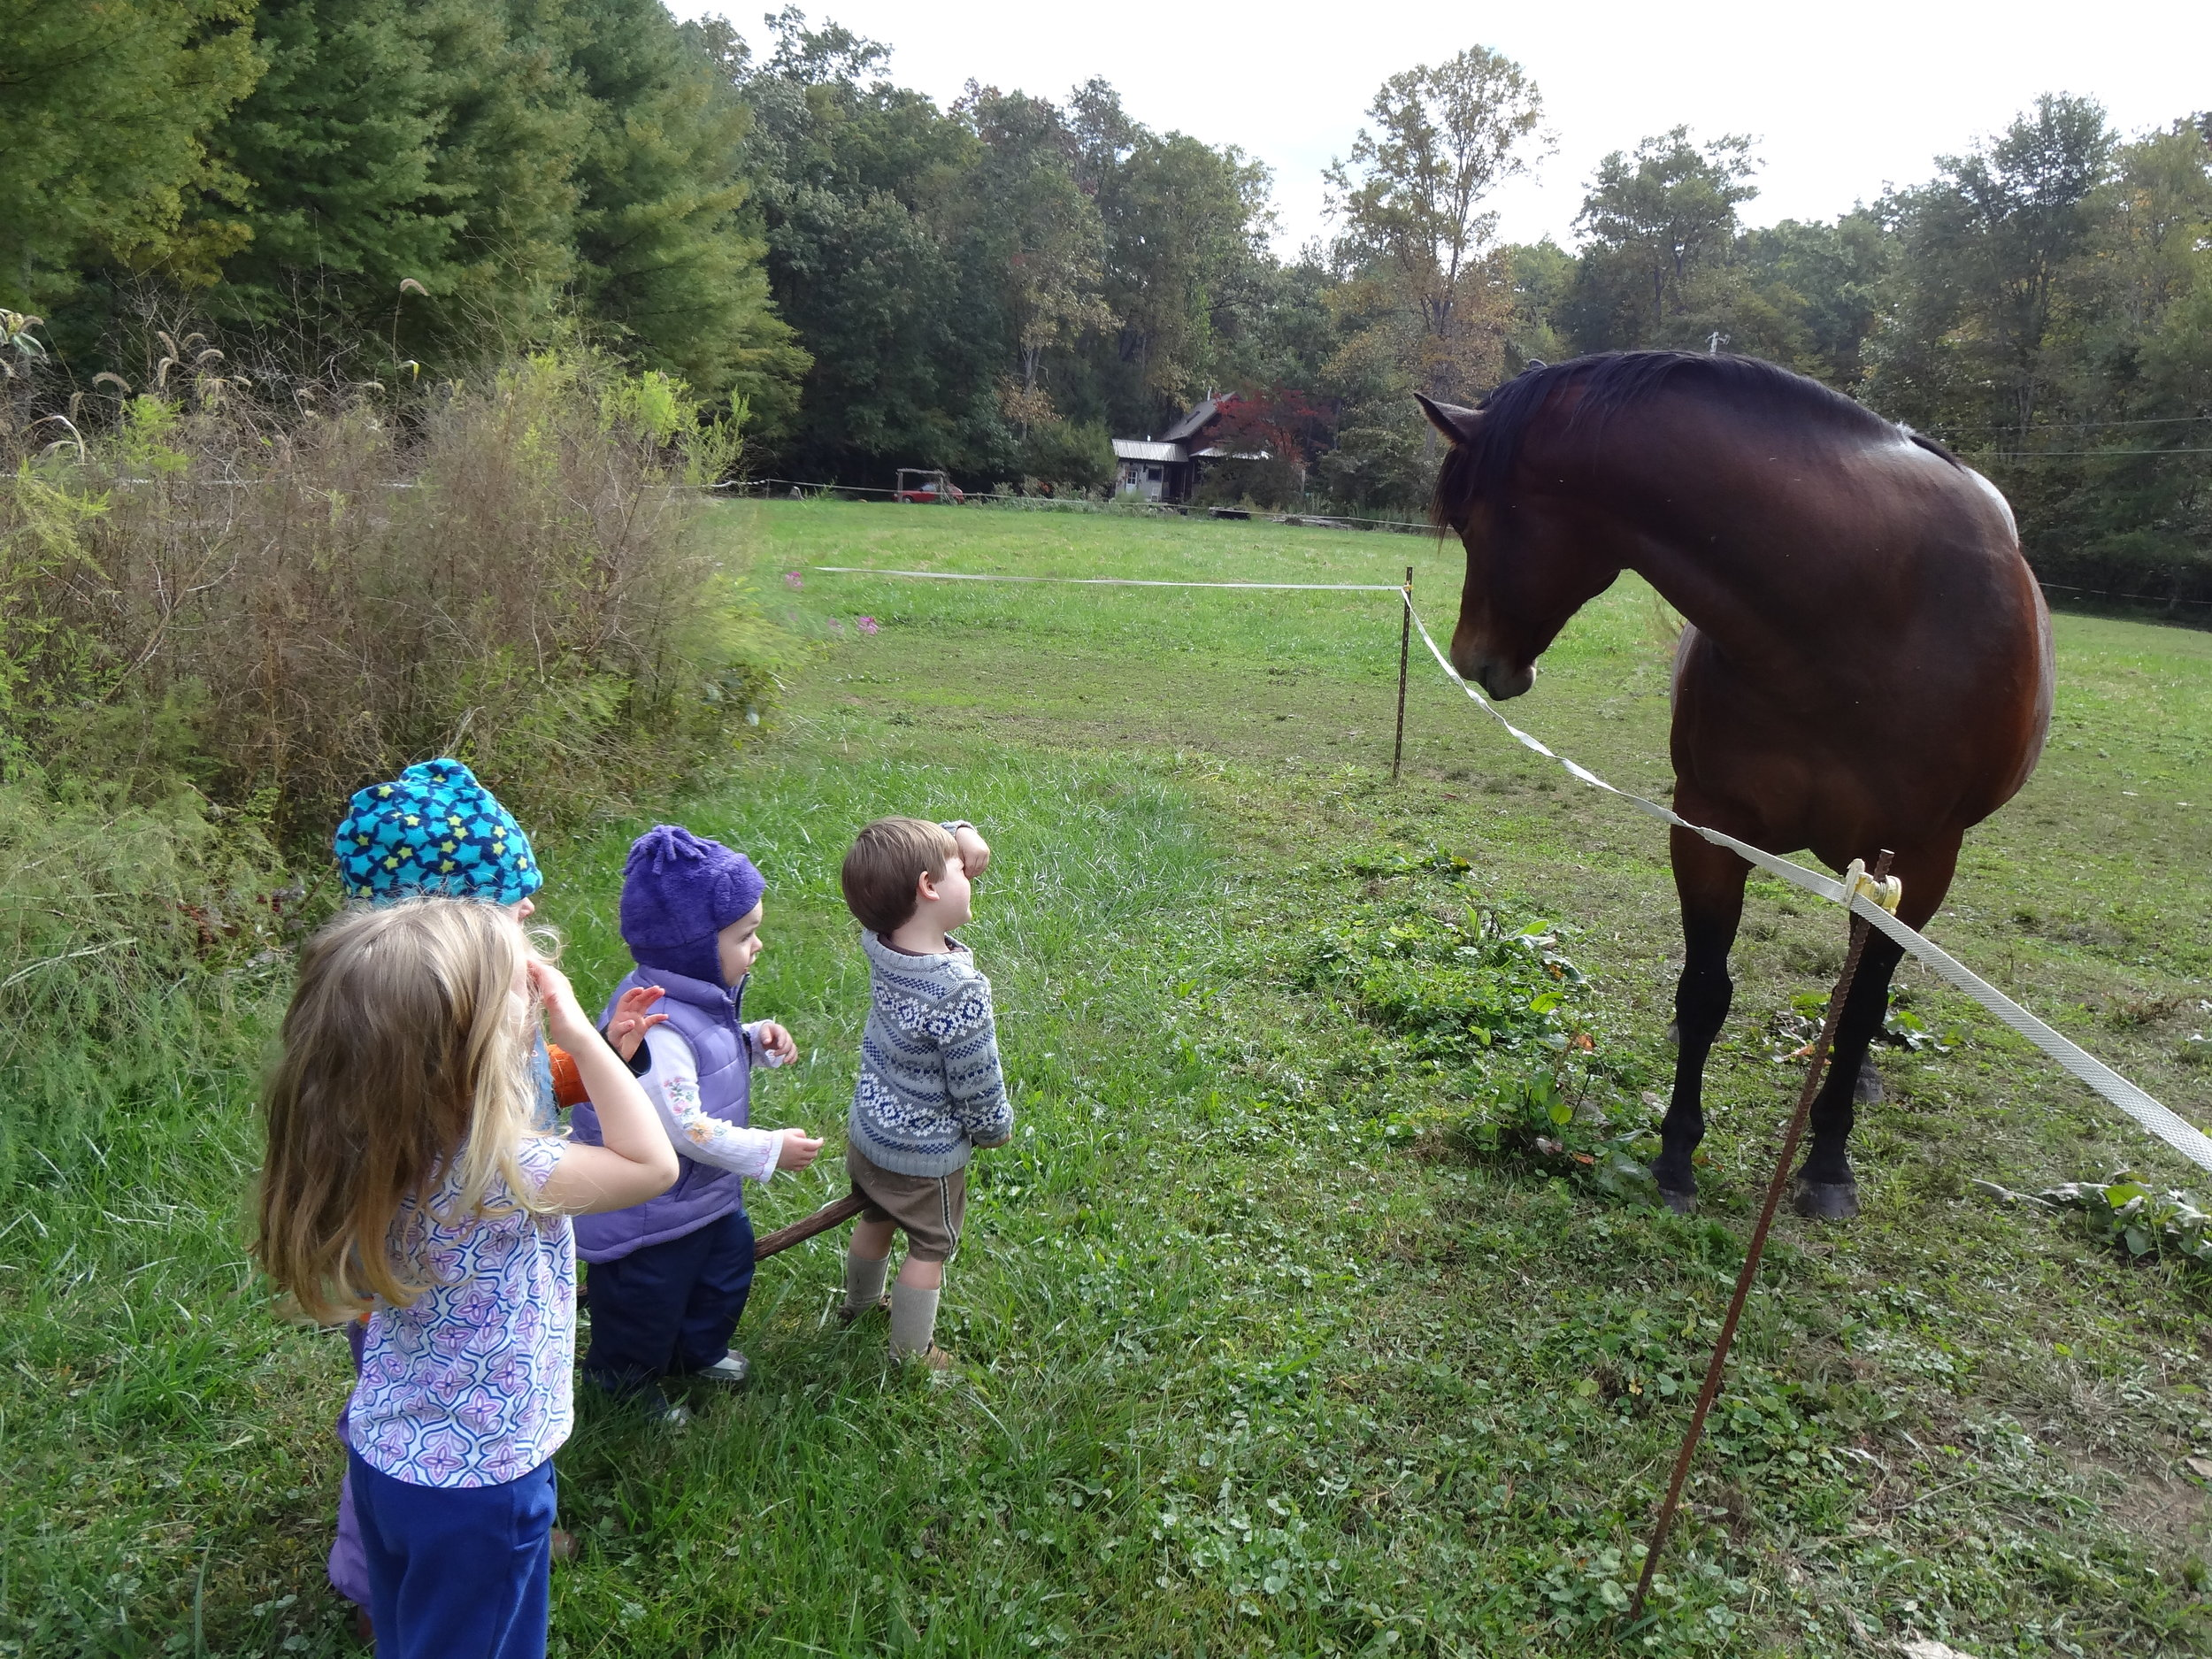 We get to say hello and give left over snack apples to horses.  We found that horses like to eat pears also!